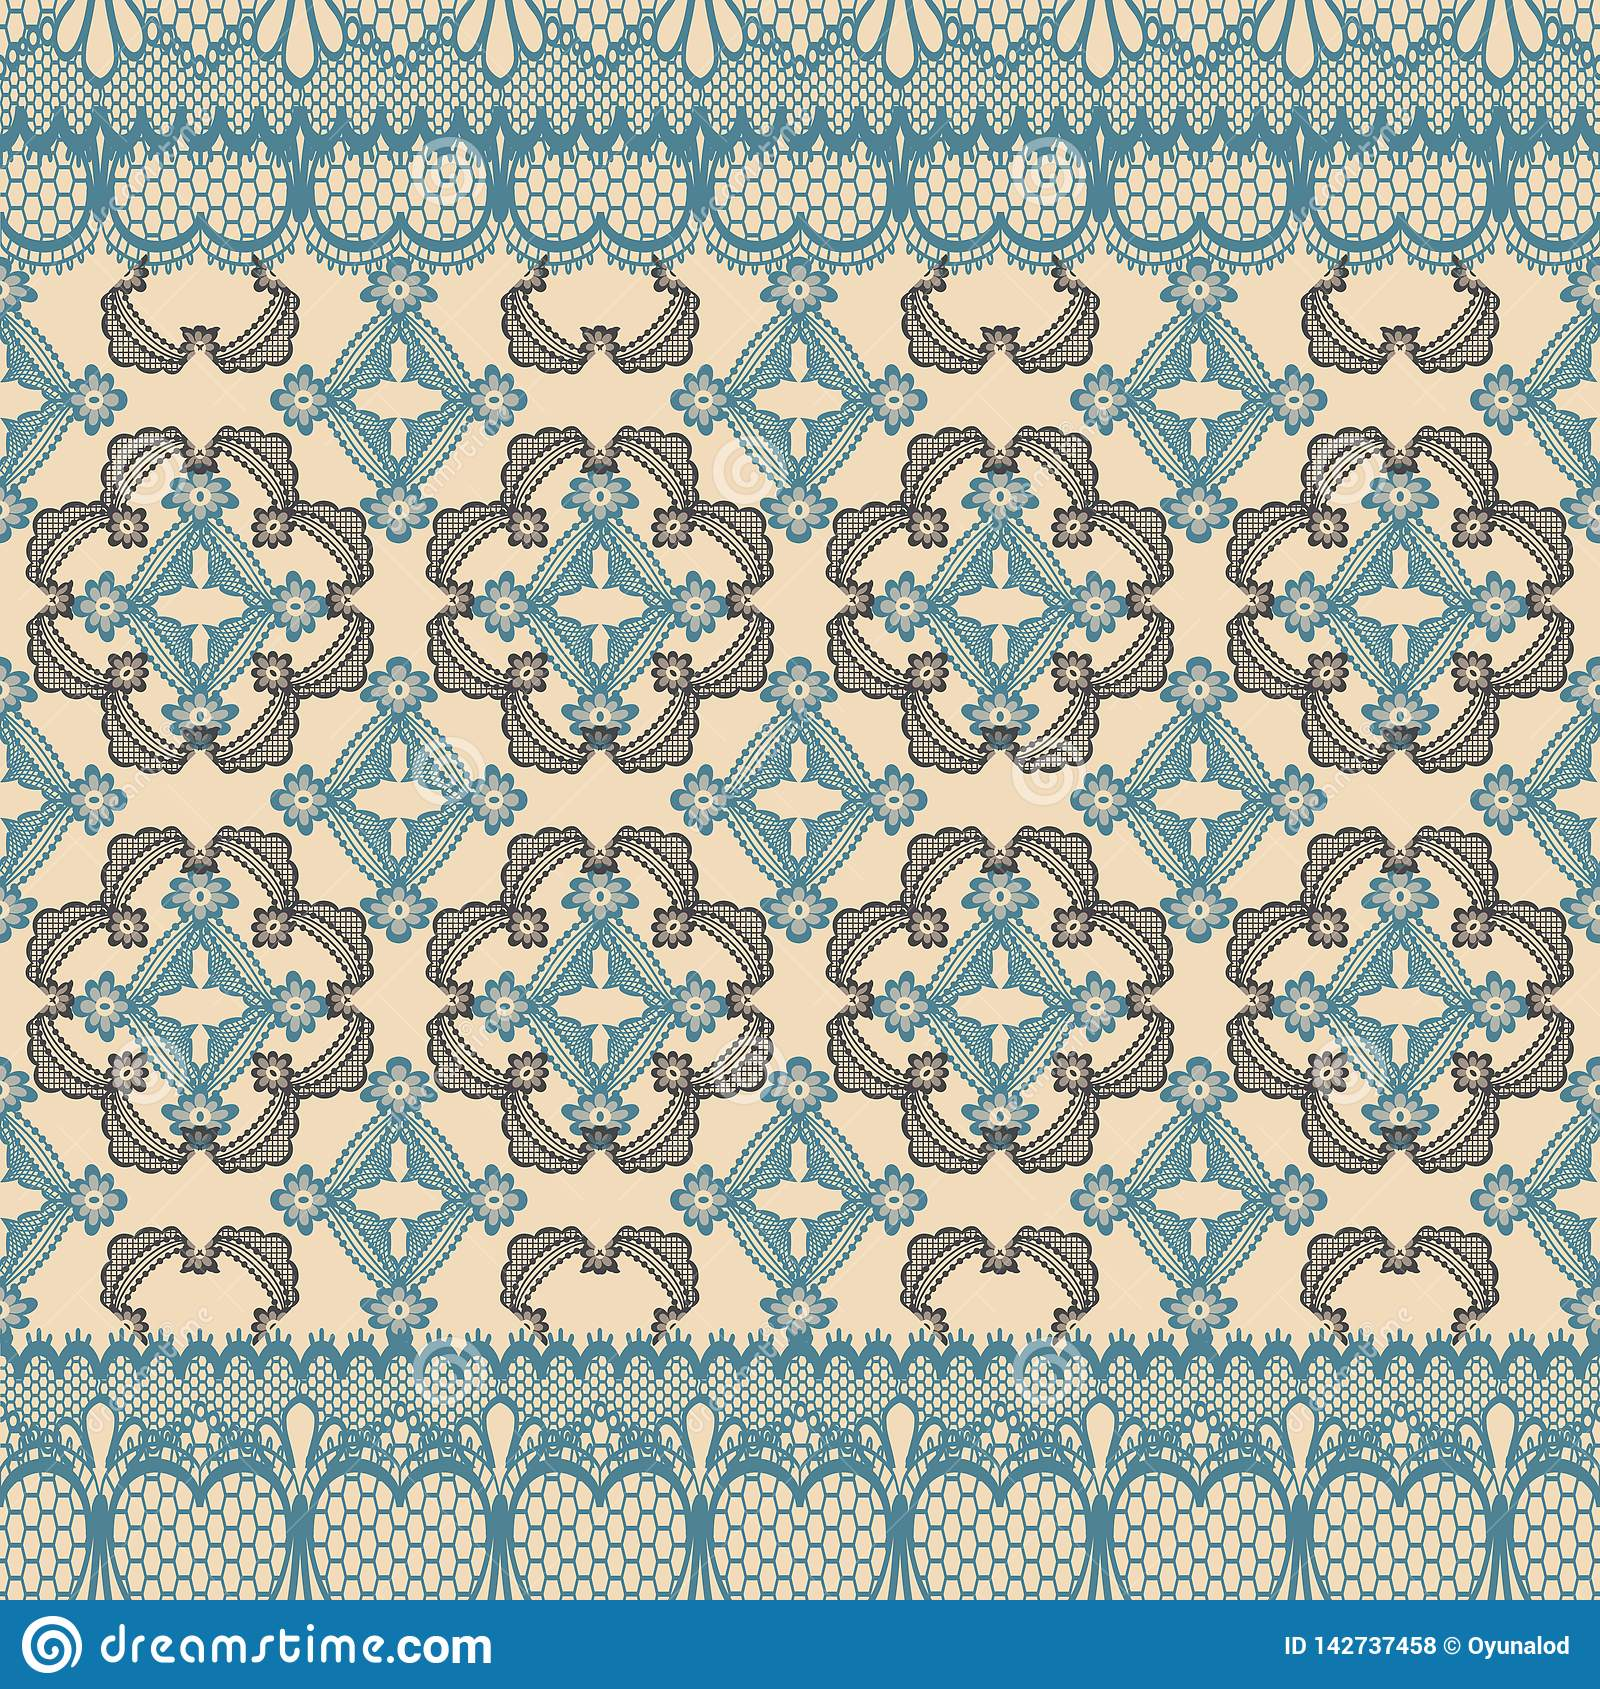 Abstract seamless repeat pattern illustration of lacy leaves, florals and hearts in geometric layout.